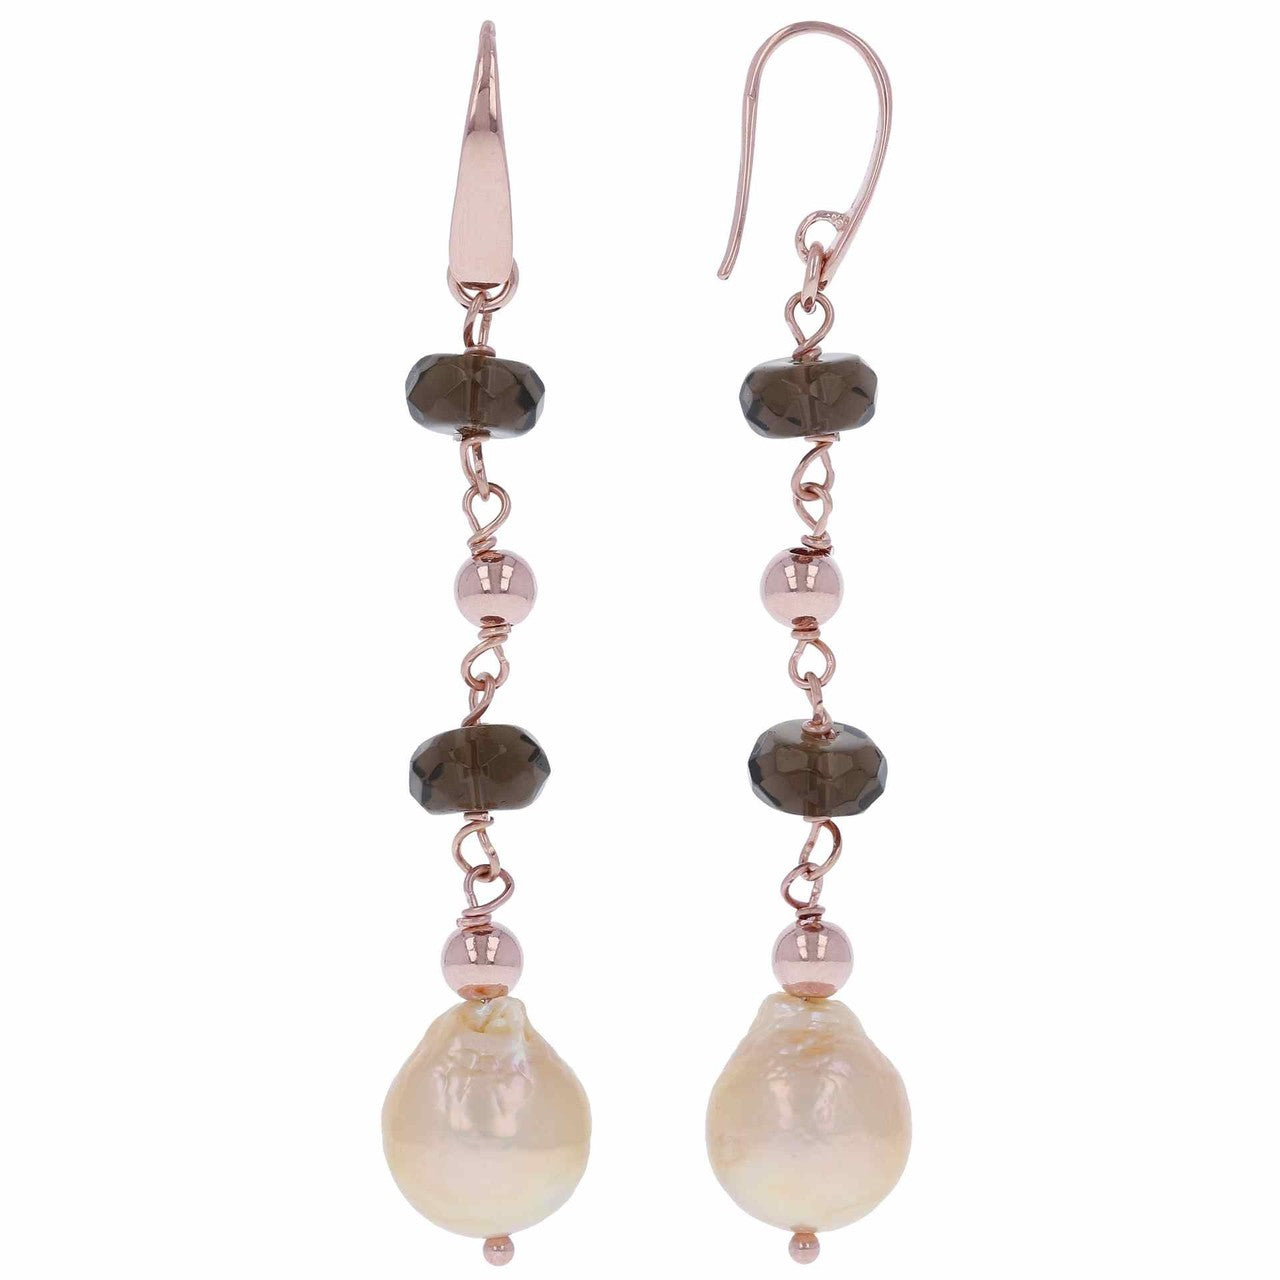 Bronzallure | Earrings | Dangle Pearl Earrings with Smoky Quartz